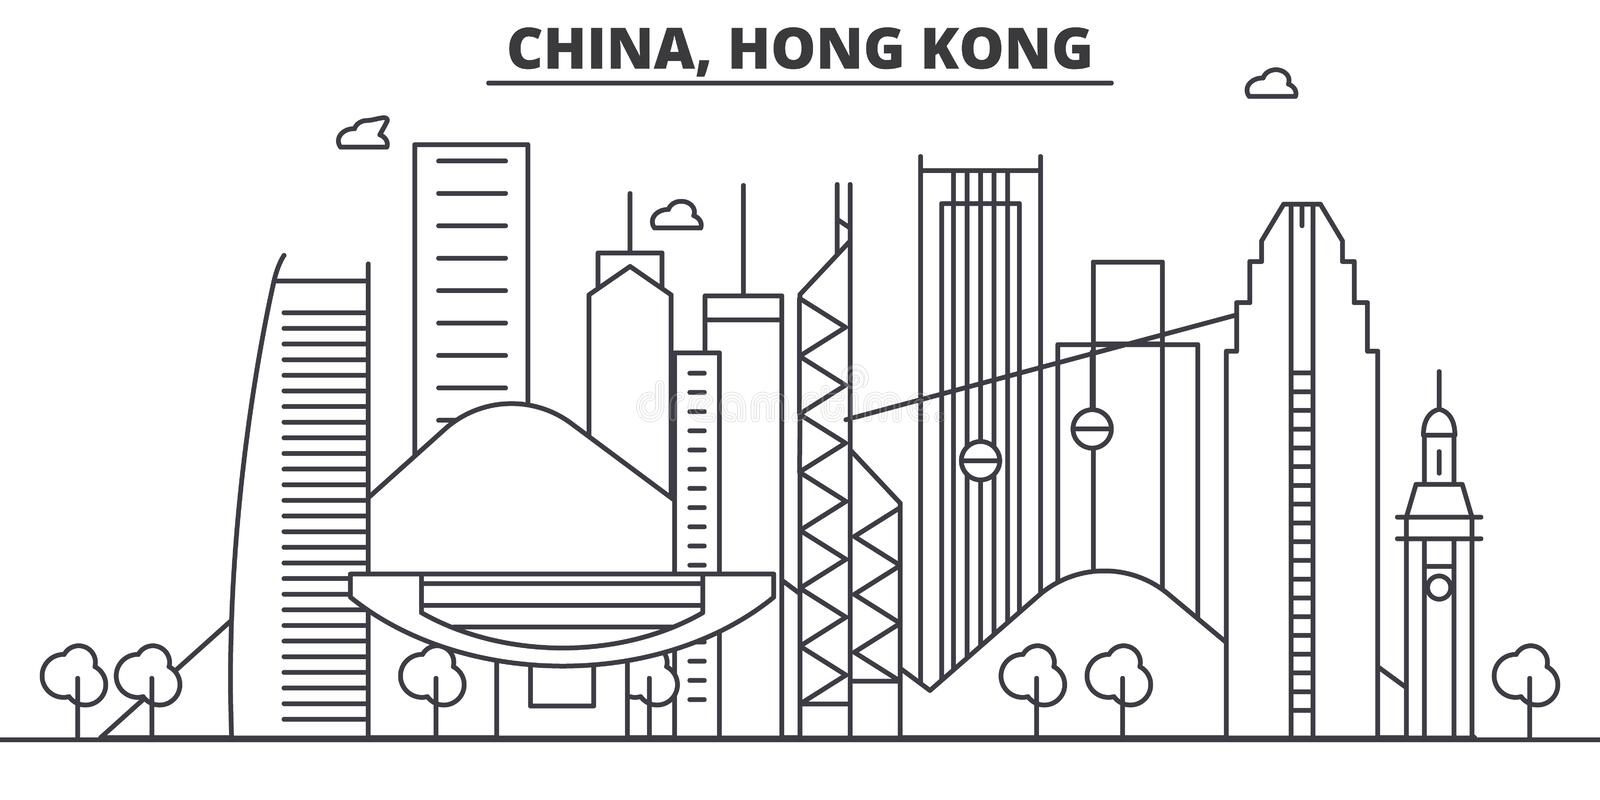 China, Hong Kong architecture line skyline illustration. Linear vector cityscape with famous landmarks, city sights vector illustration